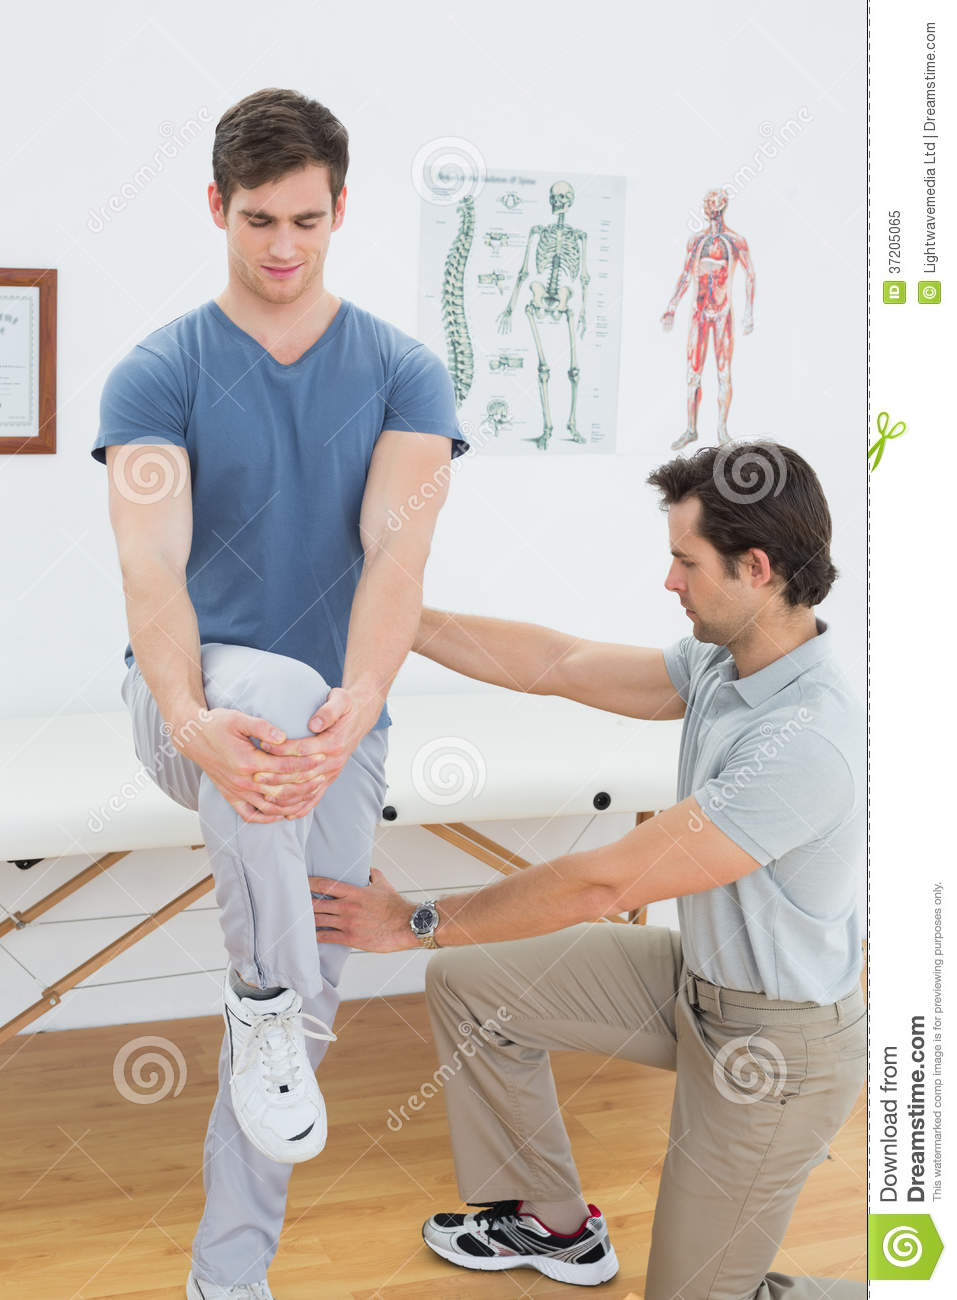 male therapist assisting man  stretching exercises royalty  stock photo image